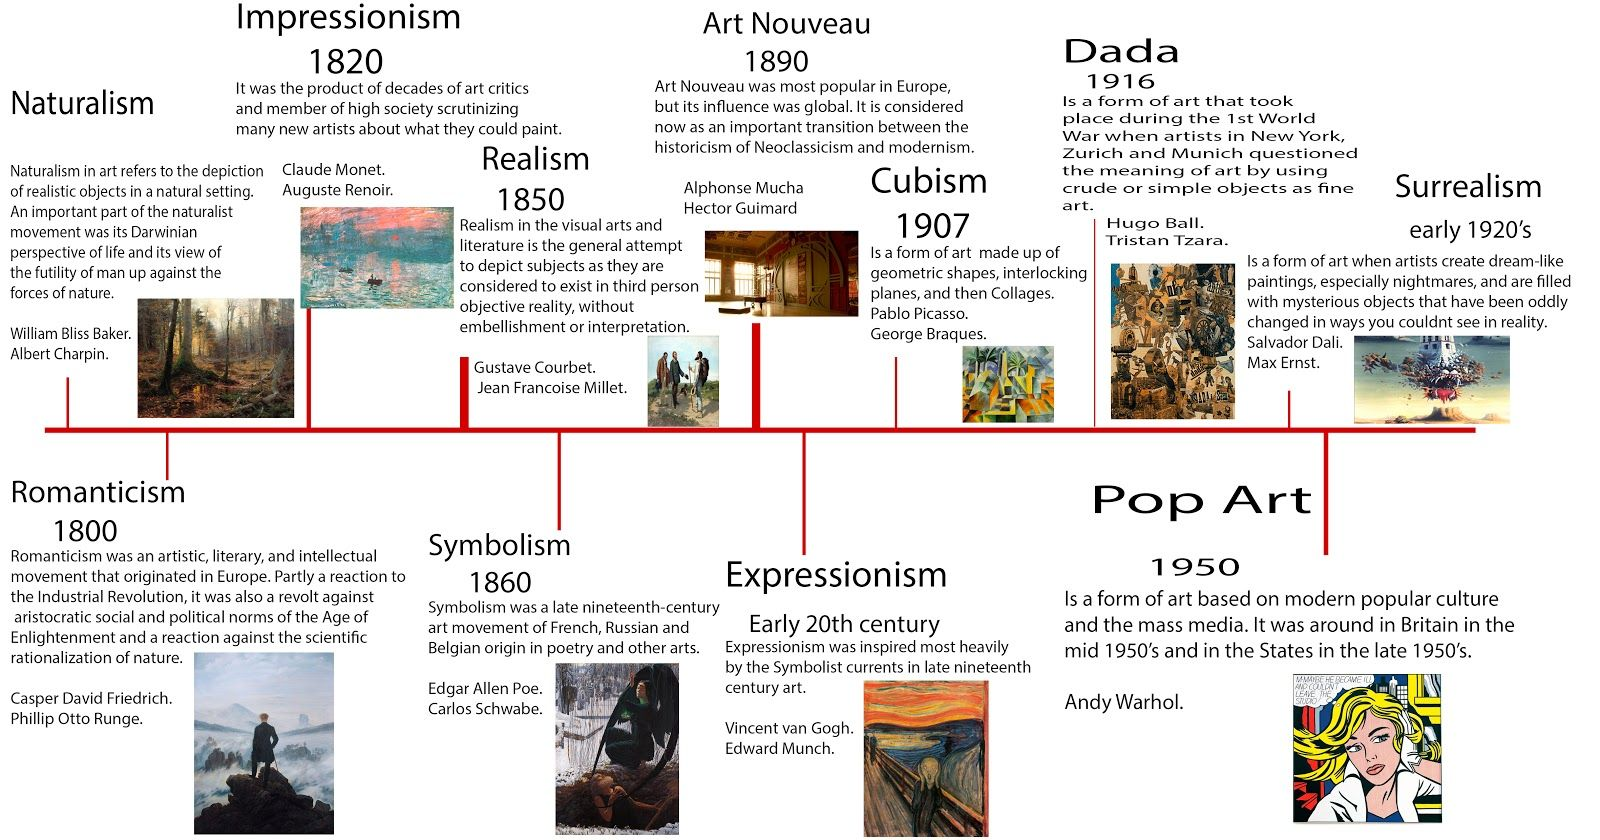 I Think That Creating The Timeline Helped Me To Understand How Each Movement Slowly Changed Over